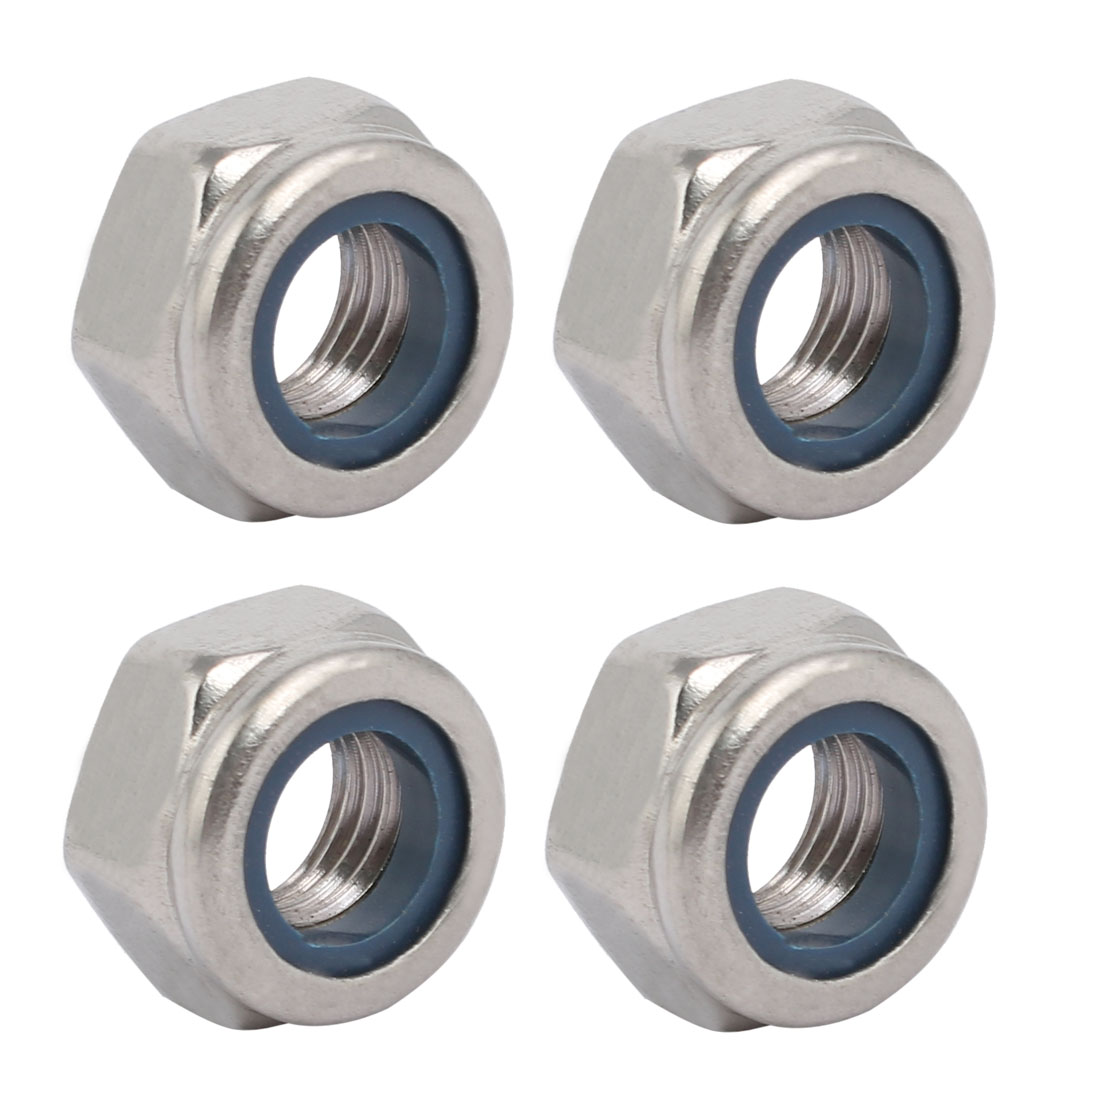 4pcs M10 x 1.25mm Pitch Metric Fine Thread 304 Stainless Steel Hex Lock Nuts